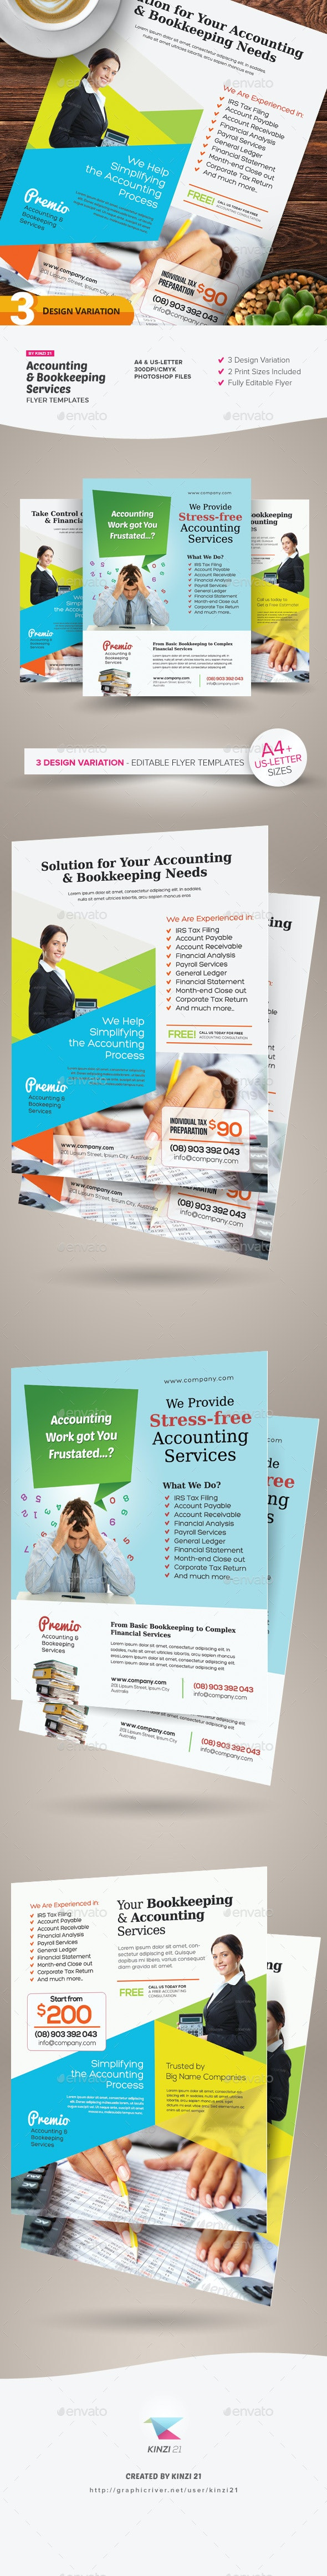 graphic-river-accounting-and-bookkeeping-services-flyers-kinzi21 Template Cover Letter Accounting Graphic River And Bookkeeping Services Flyers Kinzi Ecyvmk on